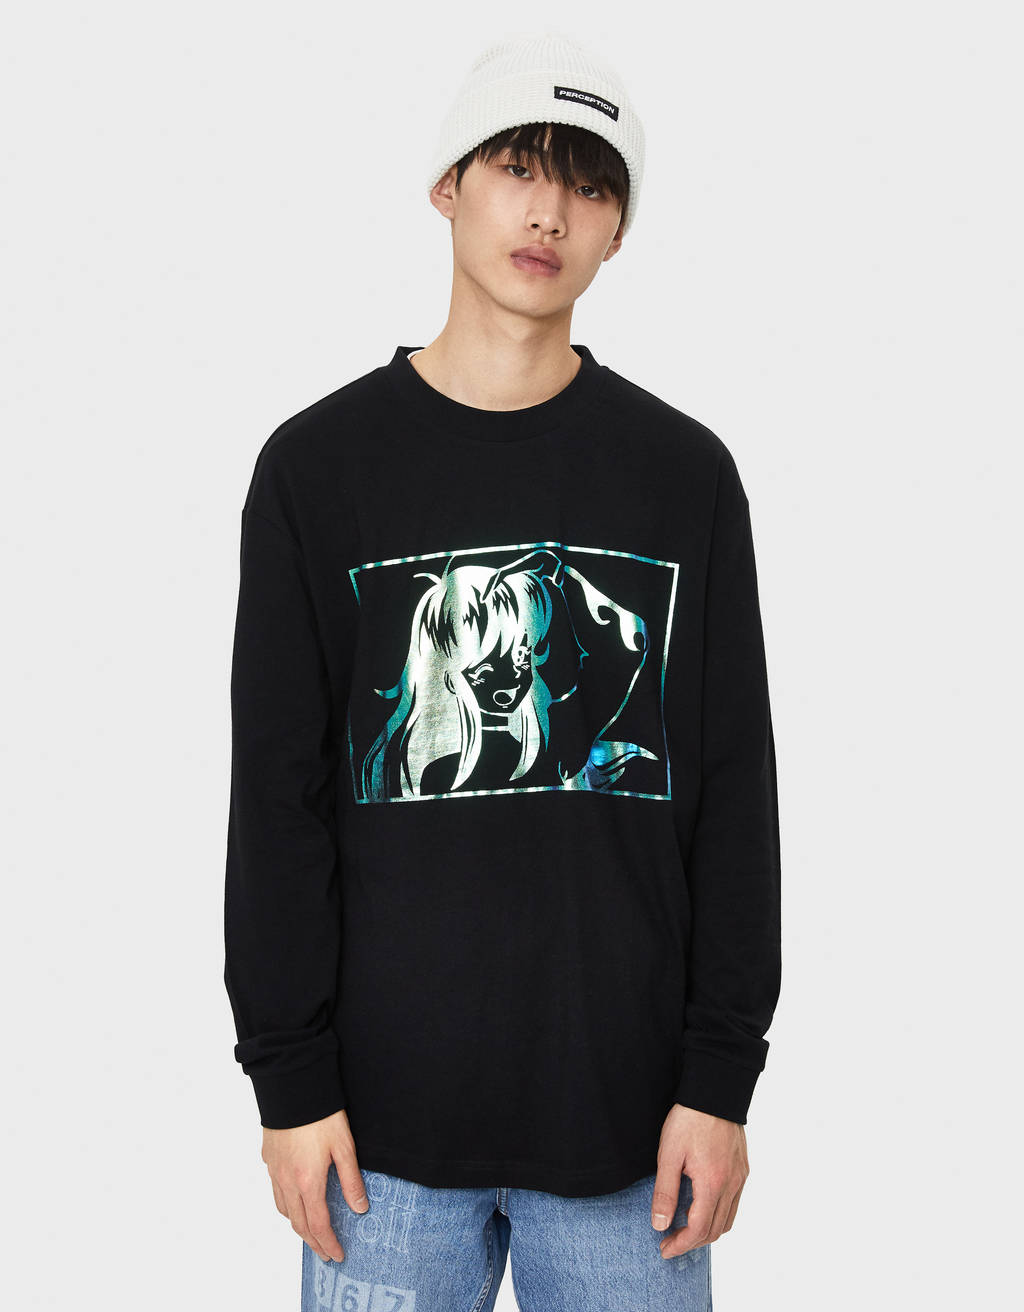 Sweatshirt com estampado